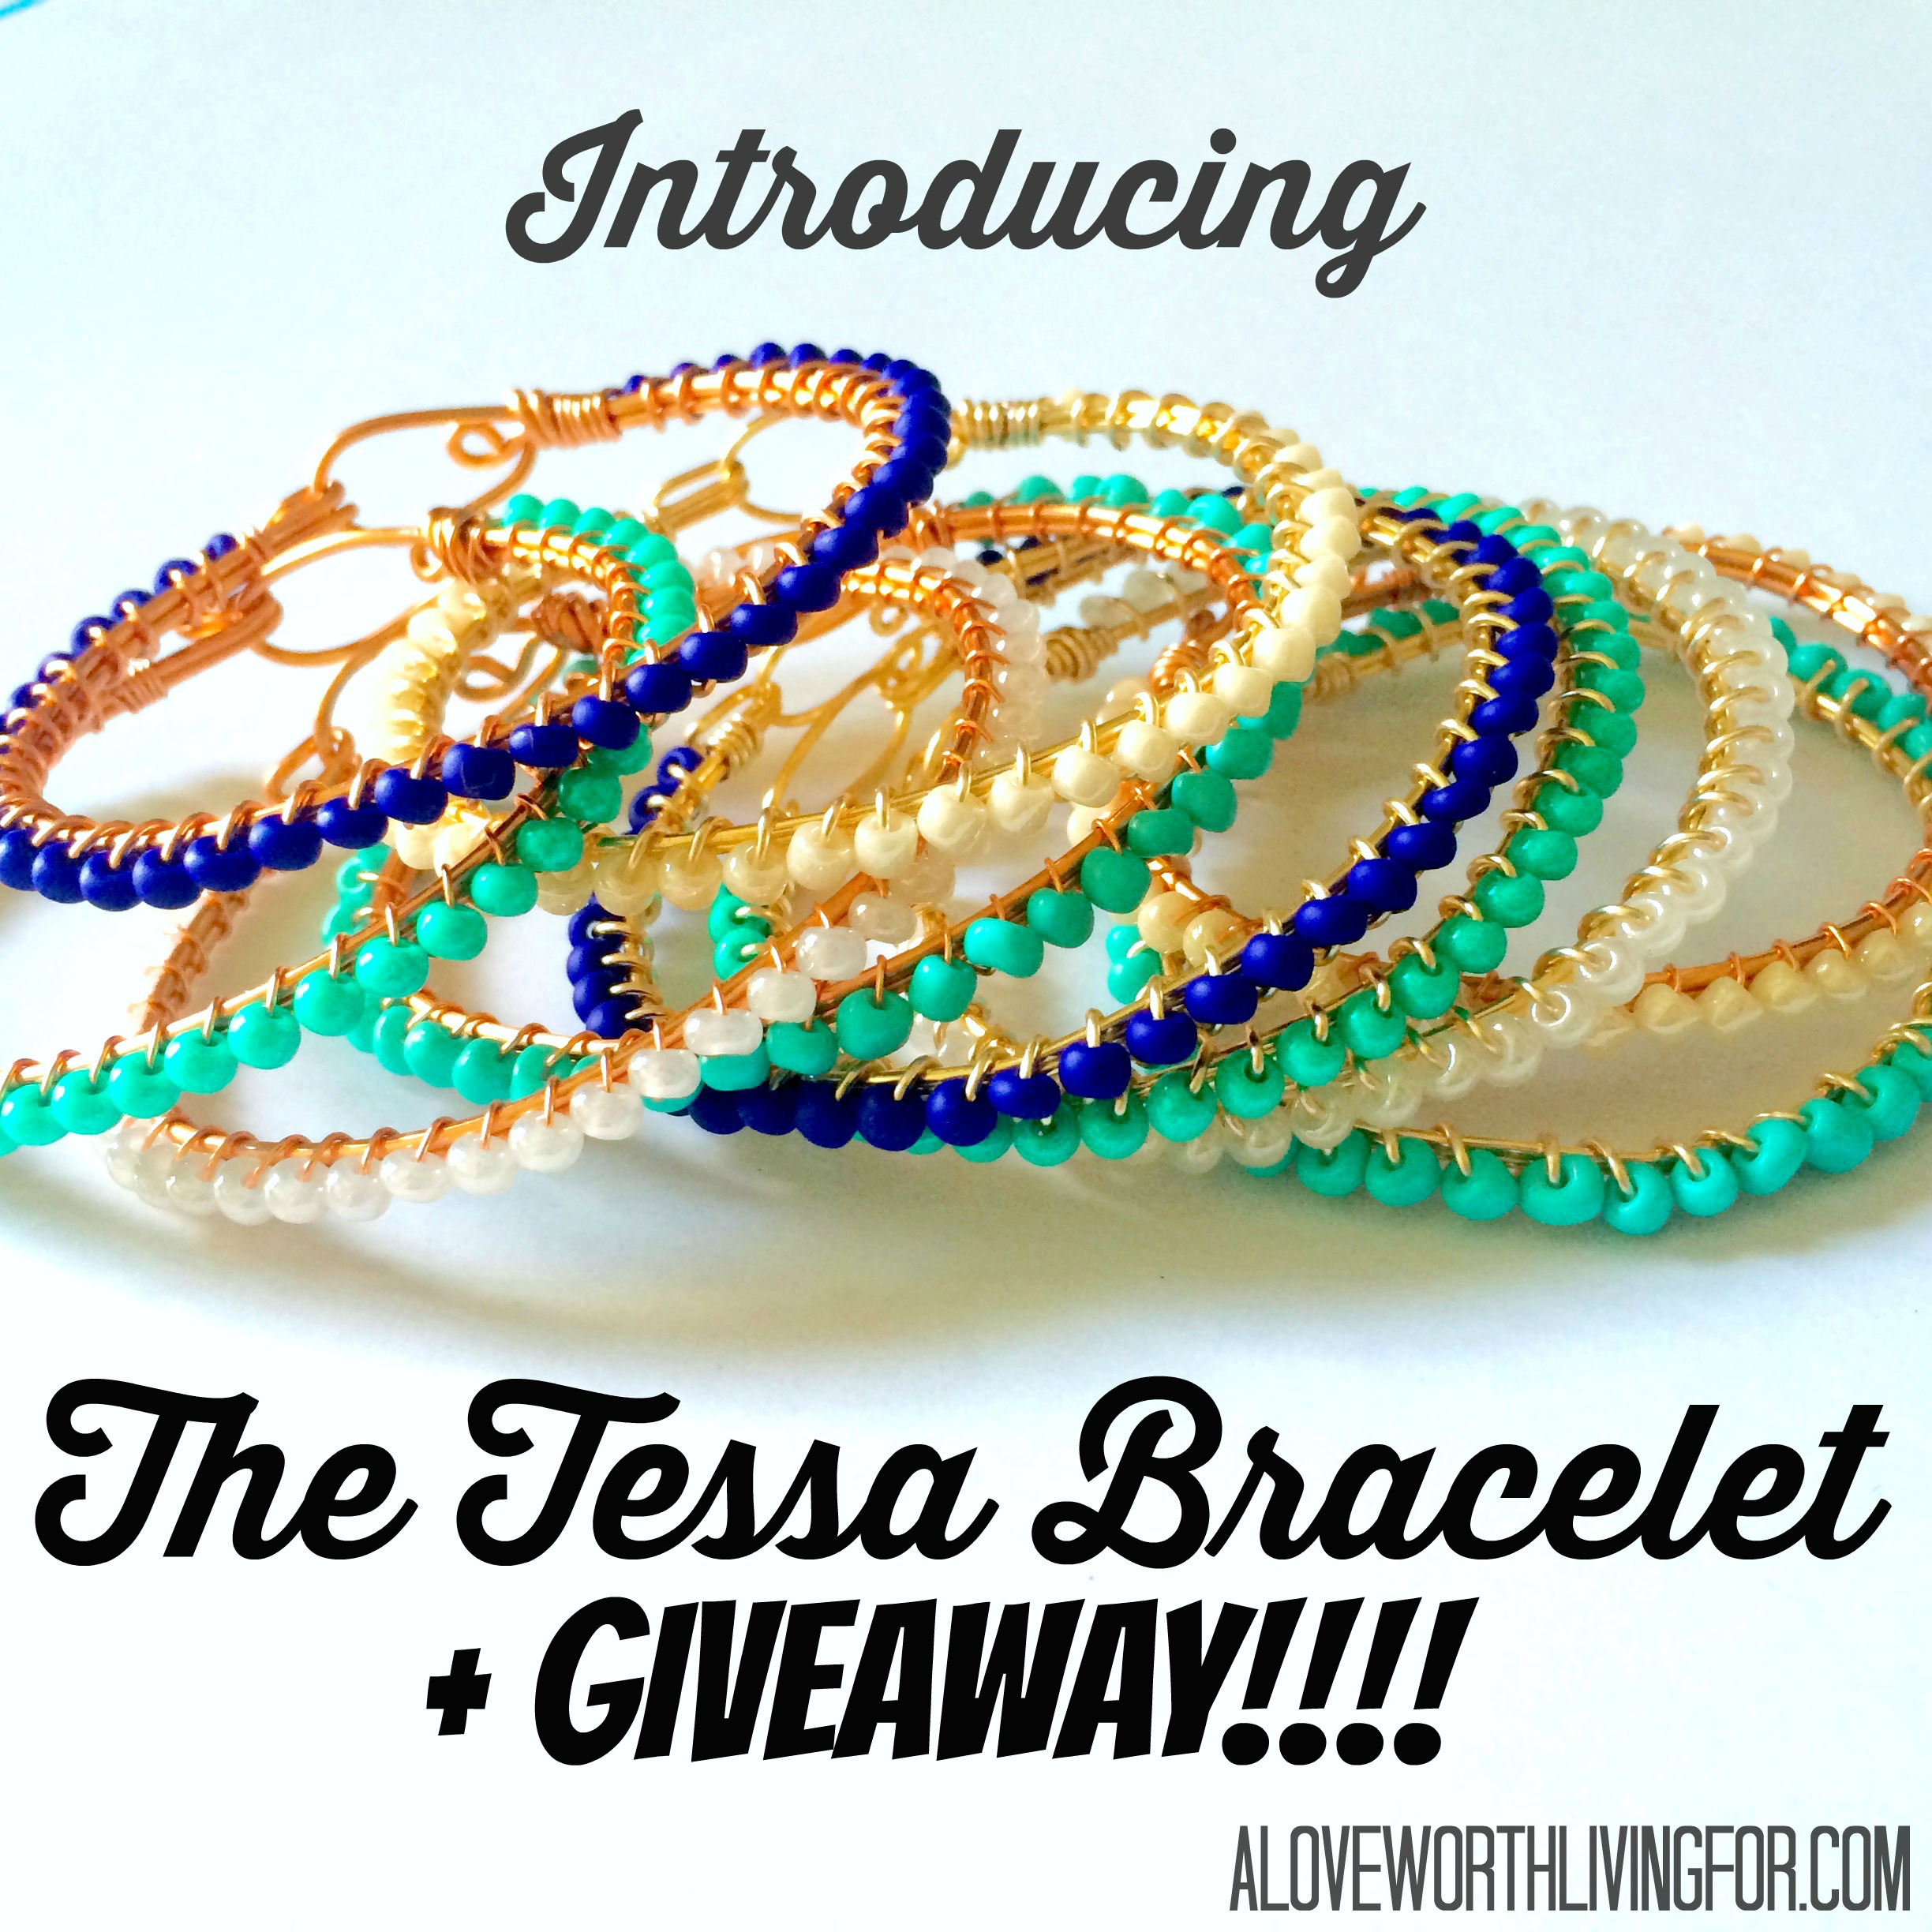 Introducing one our newest jewelry lines: The Tessa Bracelet! A showcase of our newest bracelet line PLUS a giveaway!! by A Love Worth Living For